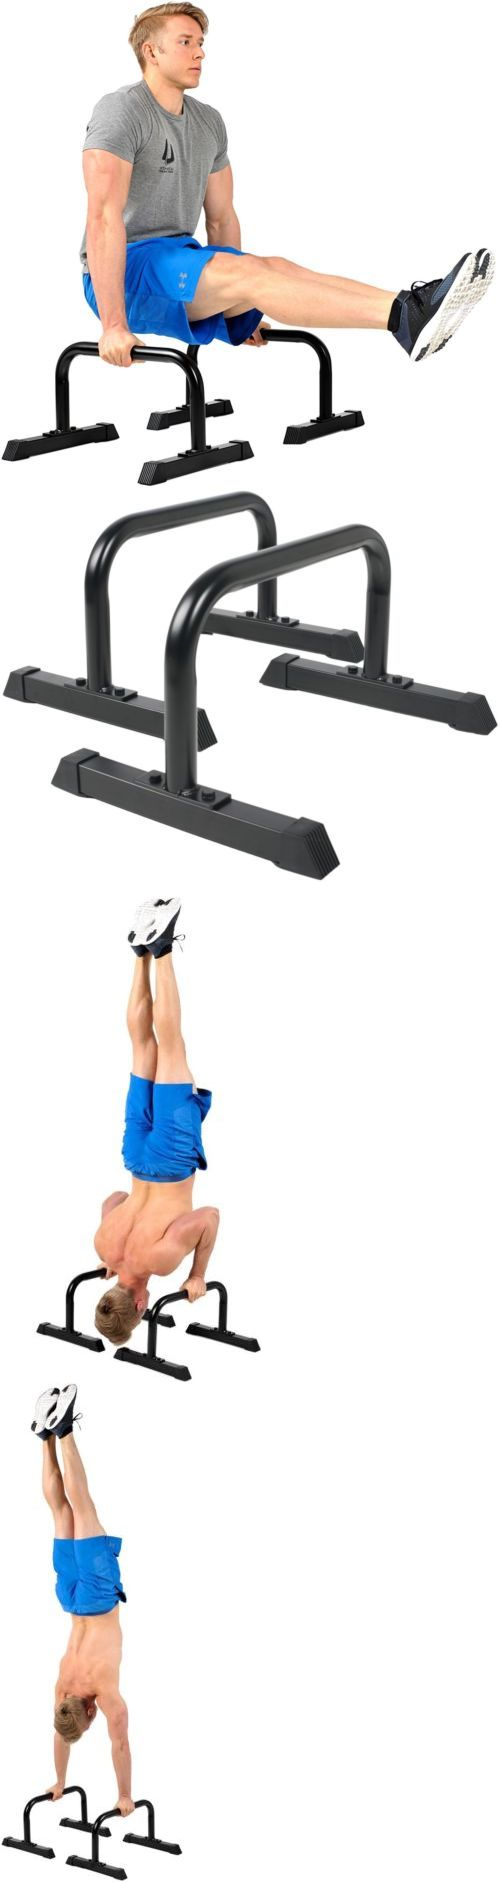 Pull Up Bars 179816: Push Up Dip Parallel Riser Bars Parallettes 12X24in Crossfit U-Shaped Handles -> BUY IT NOW ONLY: $120.99 on eBay!